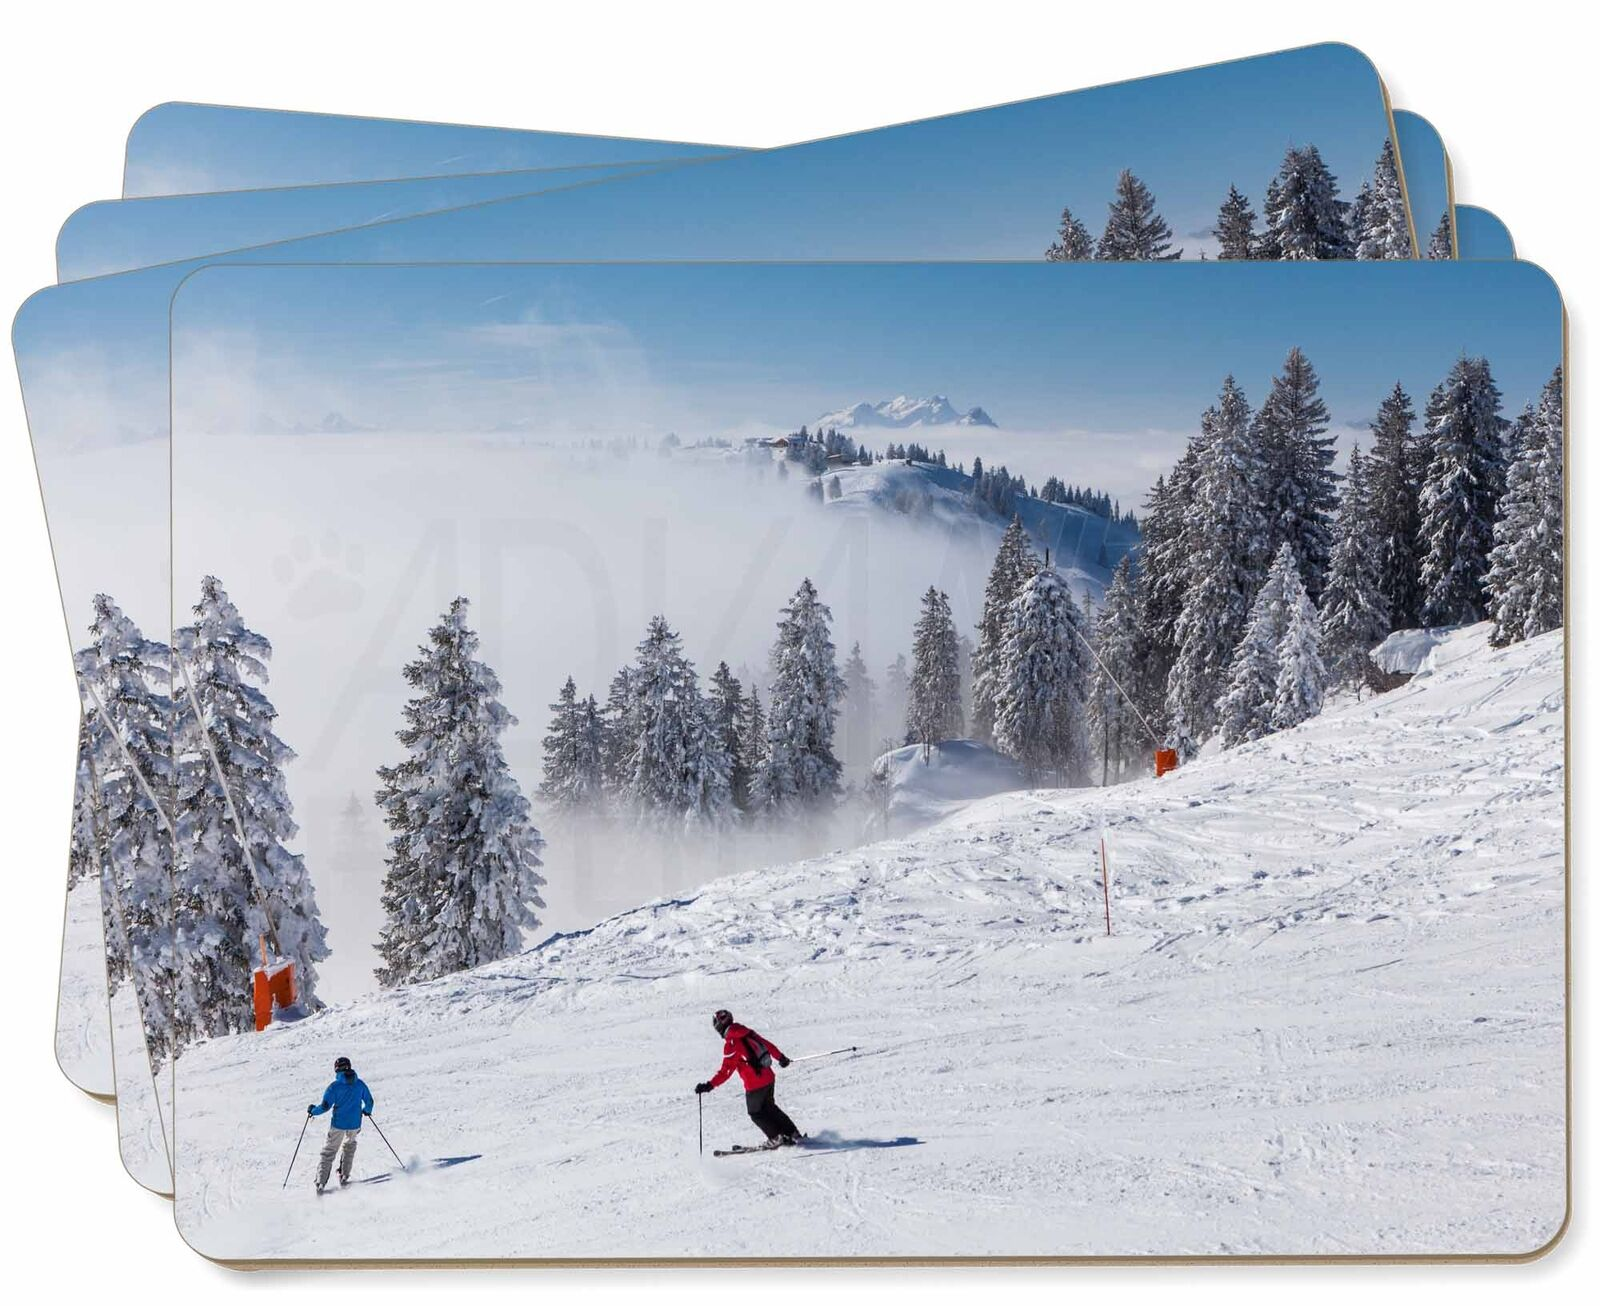 Snow Ski Skiers on Mountain Picture Placemats in Gift Box, SKI-1P